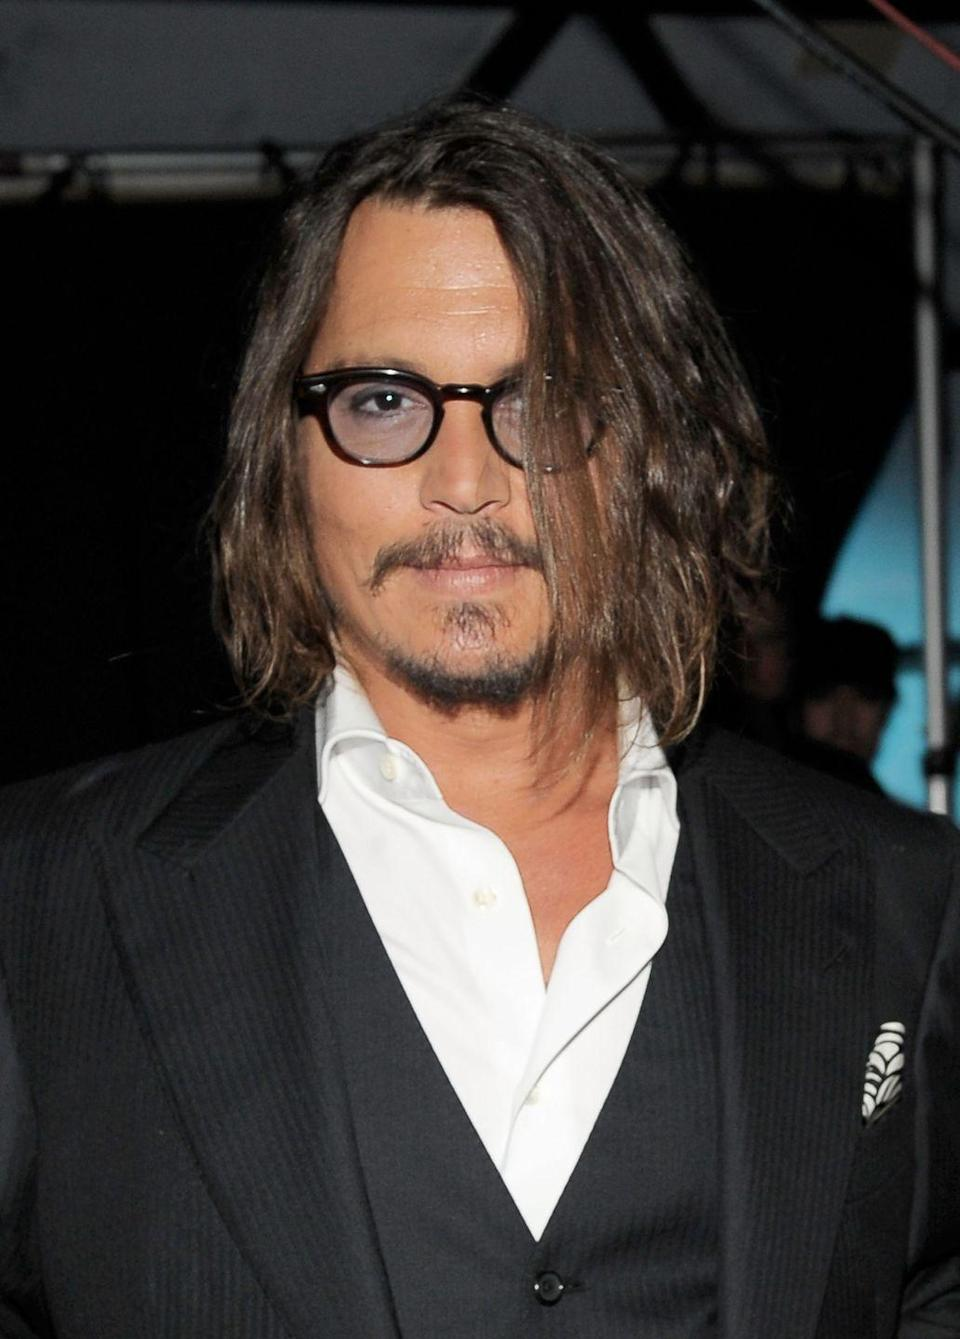 "<p>Depp almost died in 2011 when he was flying in a small plane with Bruce Robinson. Depp told <em>Live Magazine</em> (via <a href=""https://www.huffpost.com/entry/johnny-depps-plane-engine_n_1071782"" data-ylk=""slk:HuffPost"" class=""link rapid-noclick-resp"">HuffPost</a>), ""The sound of the engines stopped. There was silence. Bruce and I were looking at each other and I think I said, 'Is this it?' It was like this weird extended moment when you're just floating for a second, and you could feel this unpleasant descent."" Luckily, it kicked back on soon afterward.</p>"